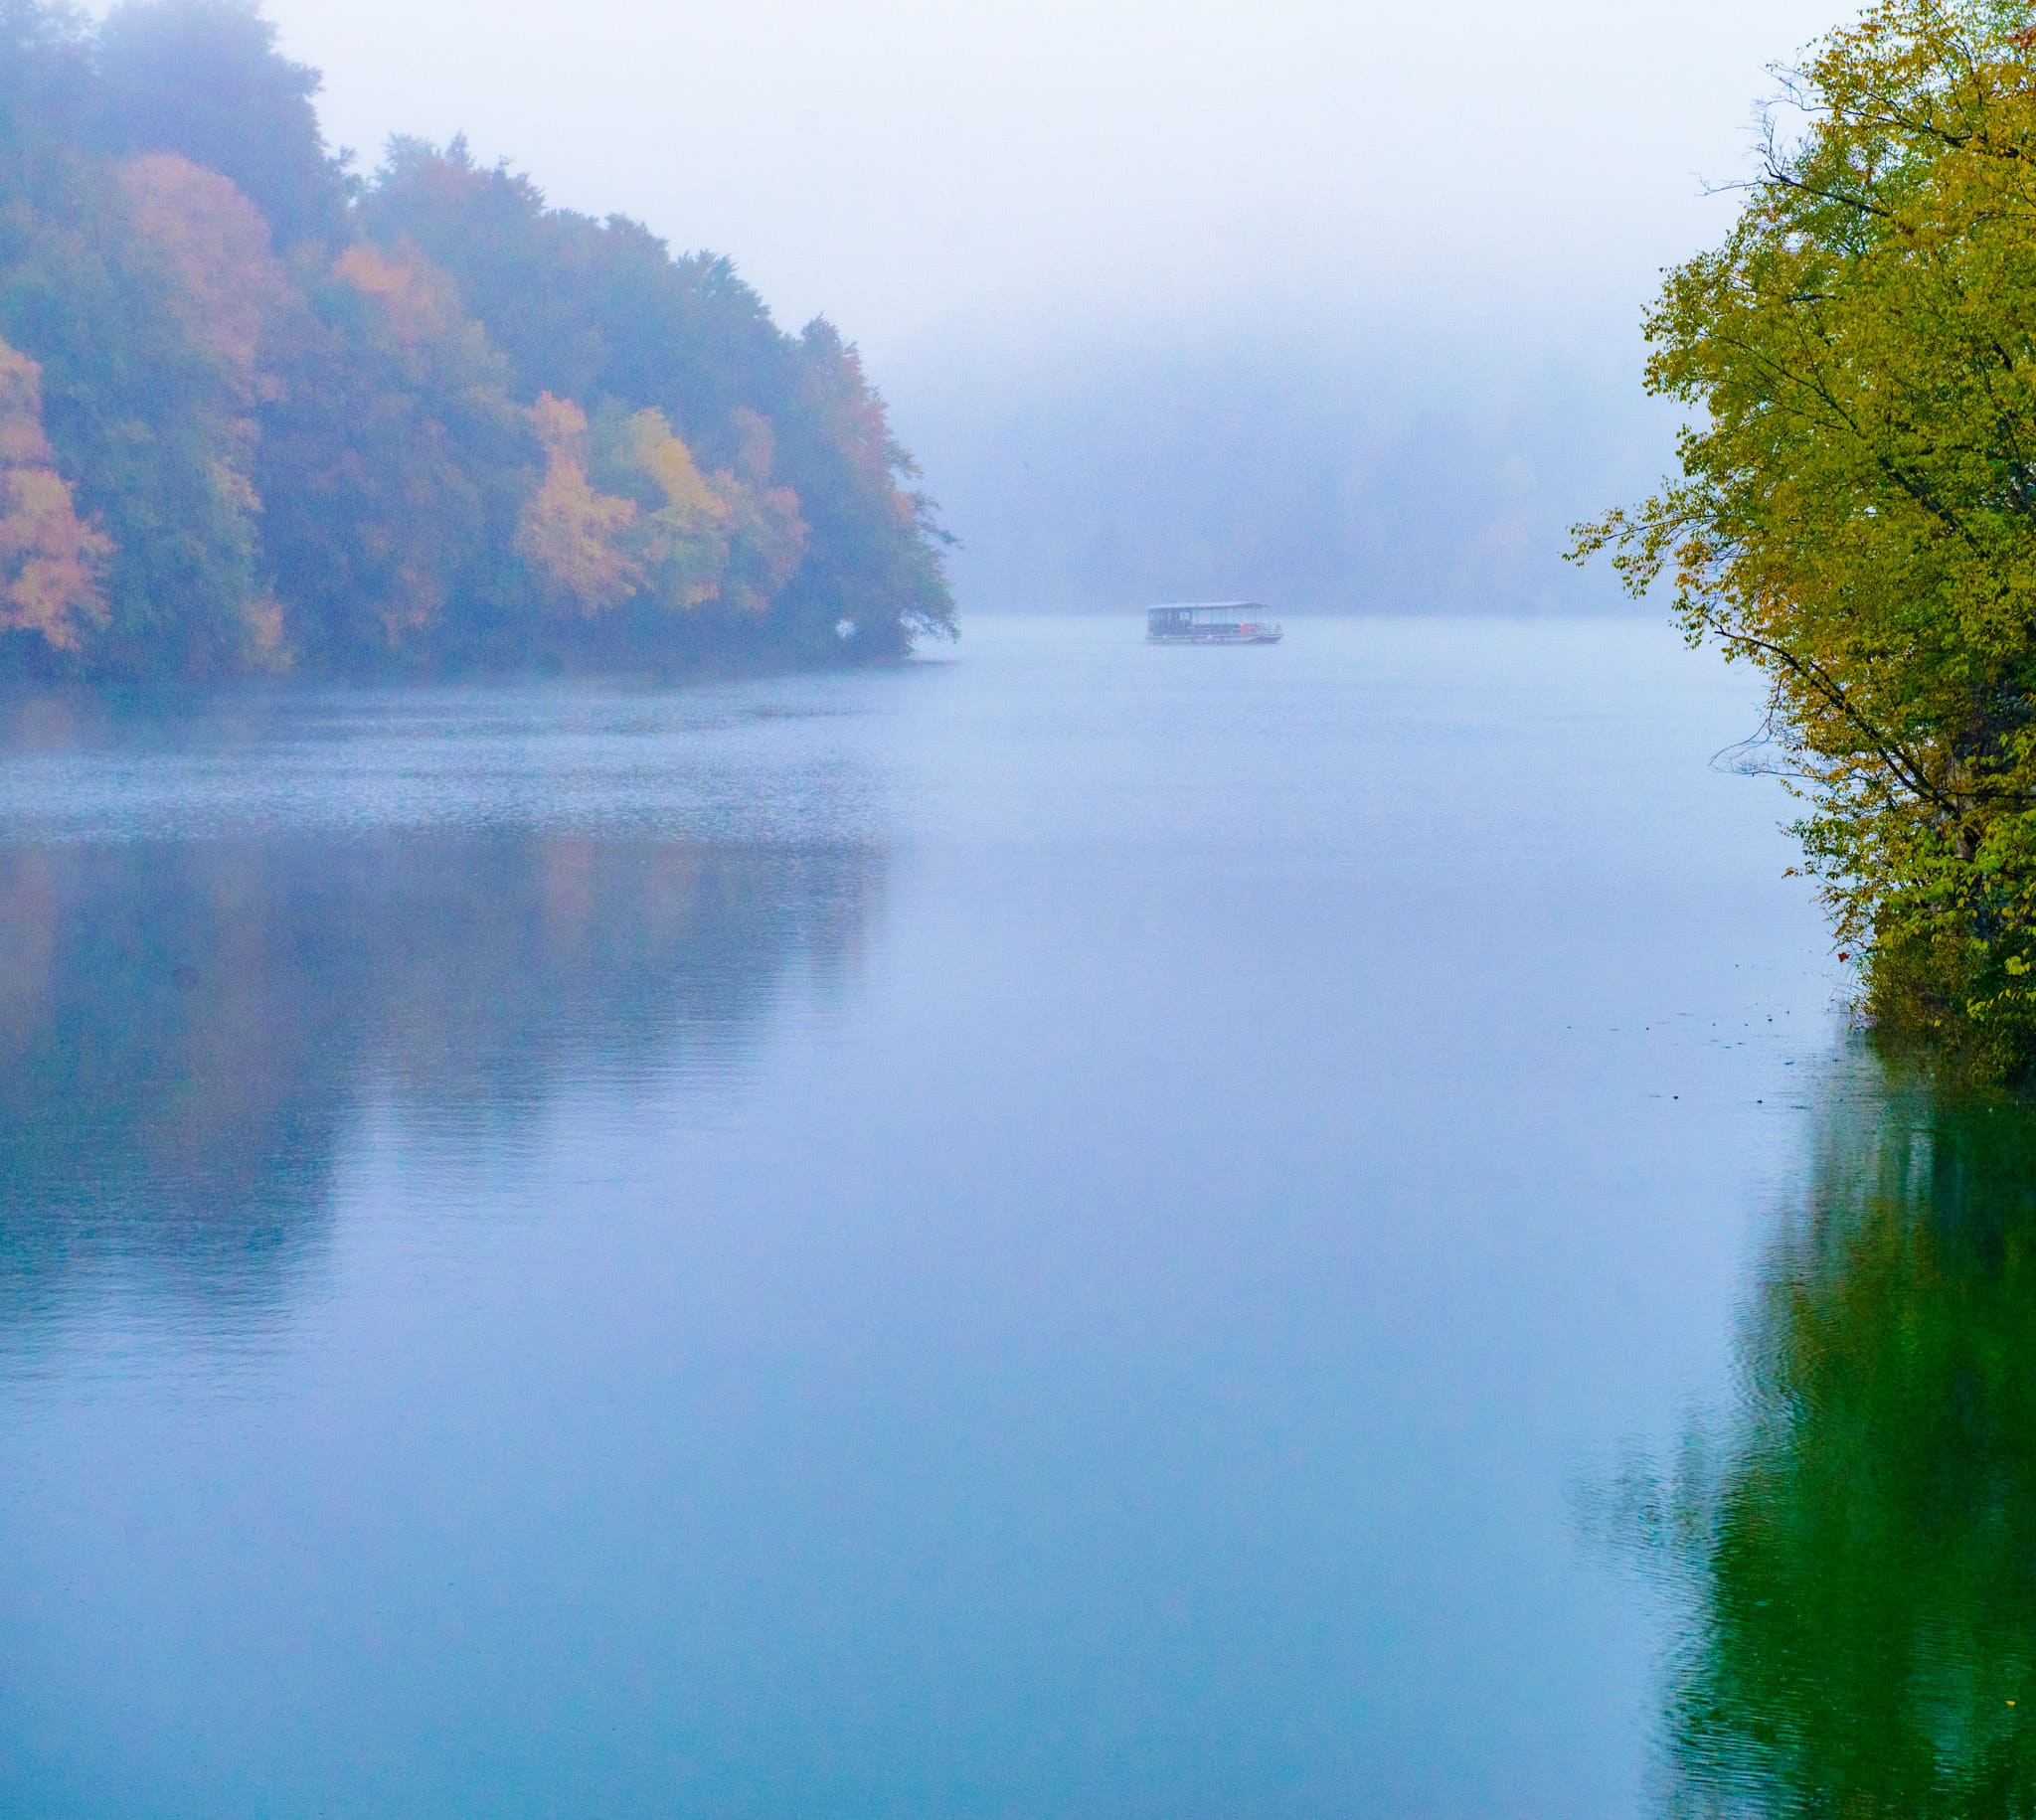 An electric ferry boat carries tourists through the fog on Lake Kozjak in Plitvice Lakes National Park in Croatia.